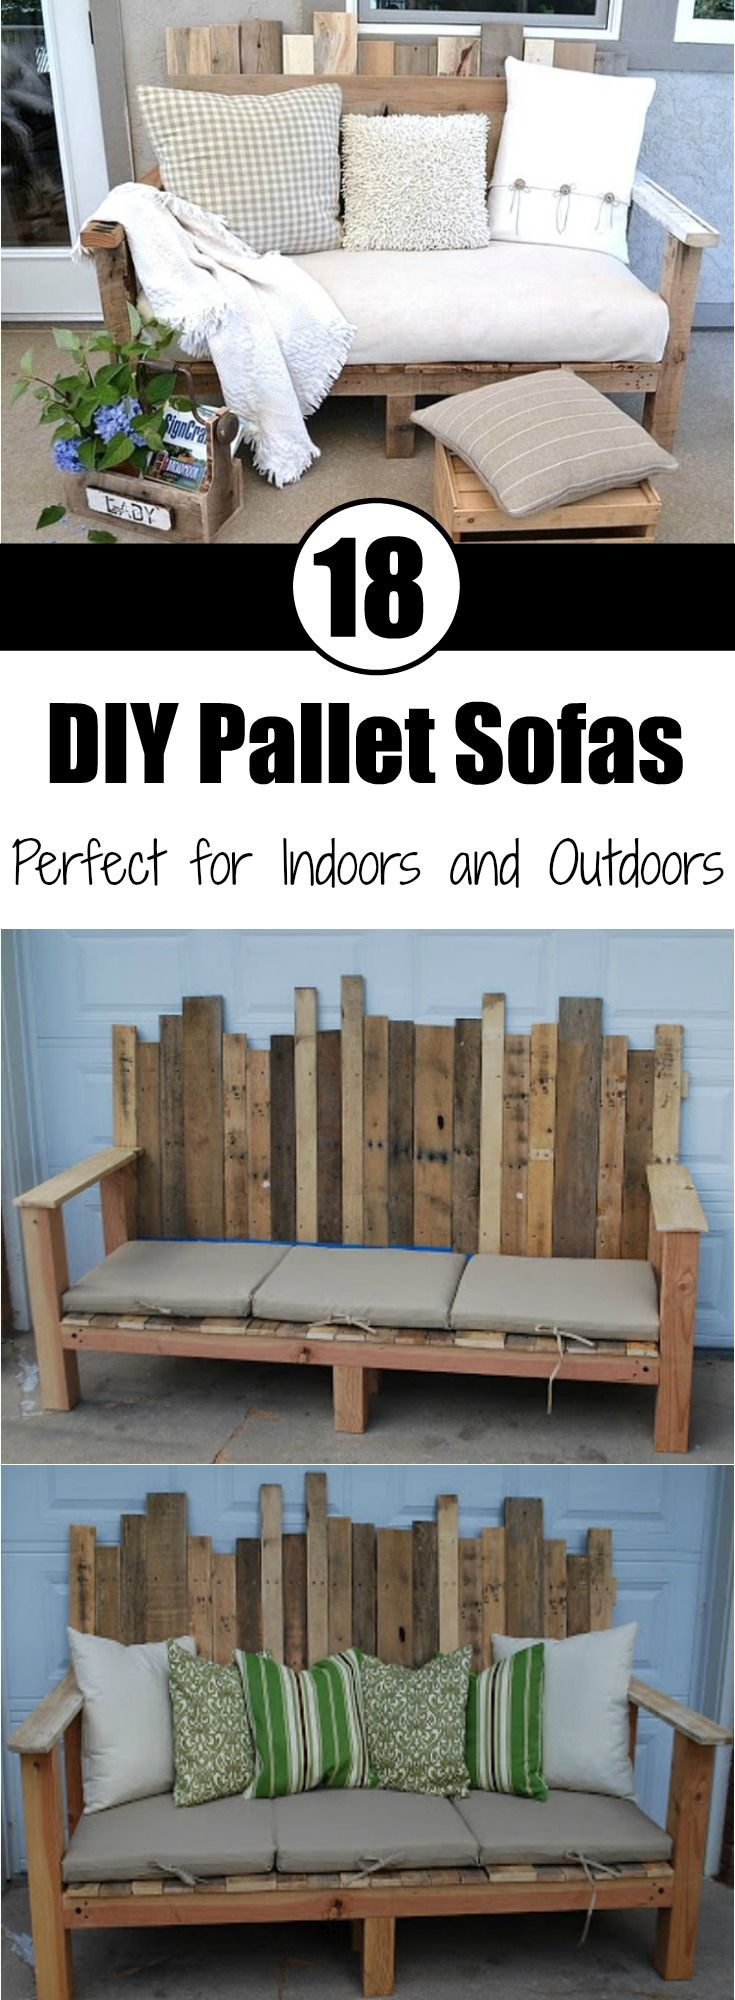 I love wooden pallets. They are so versatile, which makes them a staple in DIY home improvement. And sofas and beds are not the only thing you can make with them.    Today, however, I want to